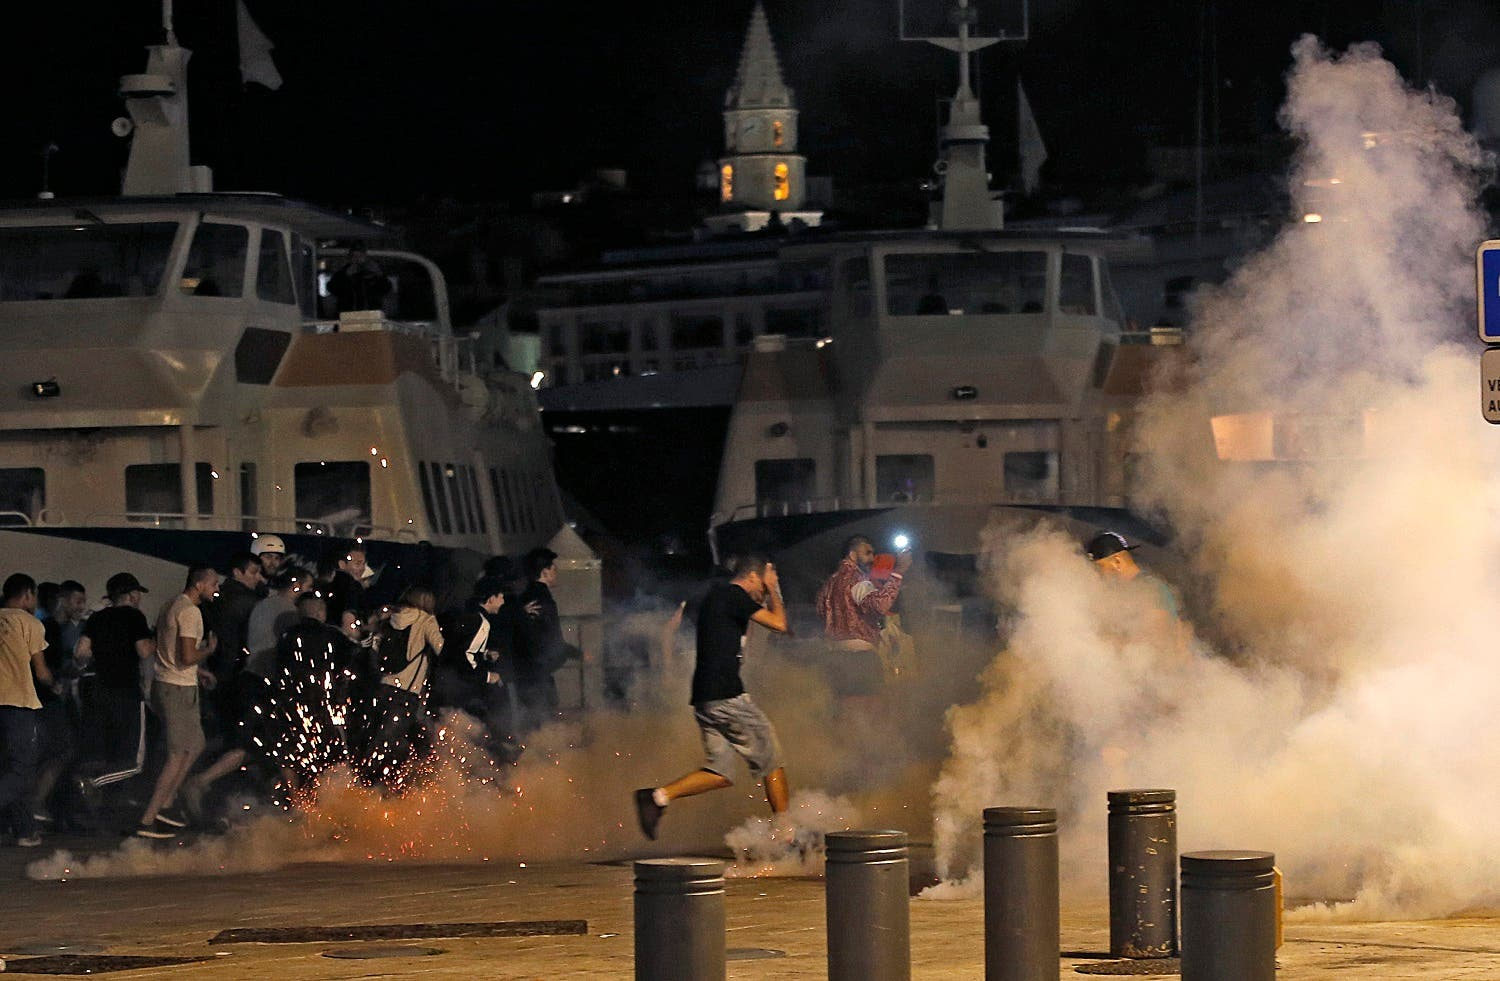 Marseille, France 11/6/16 Police disperse revellers at the old port of Marseille after the England v Russia - Group B match. REUTERS